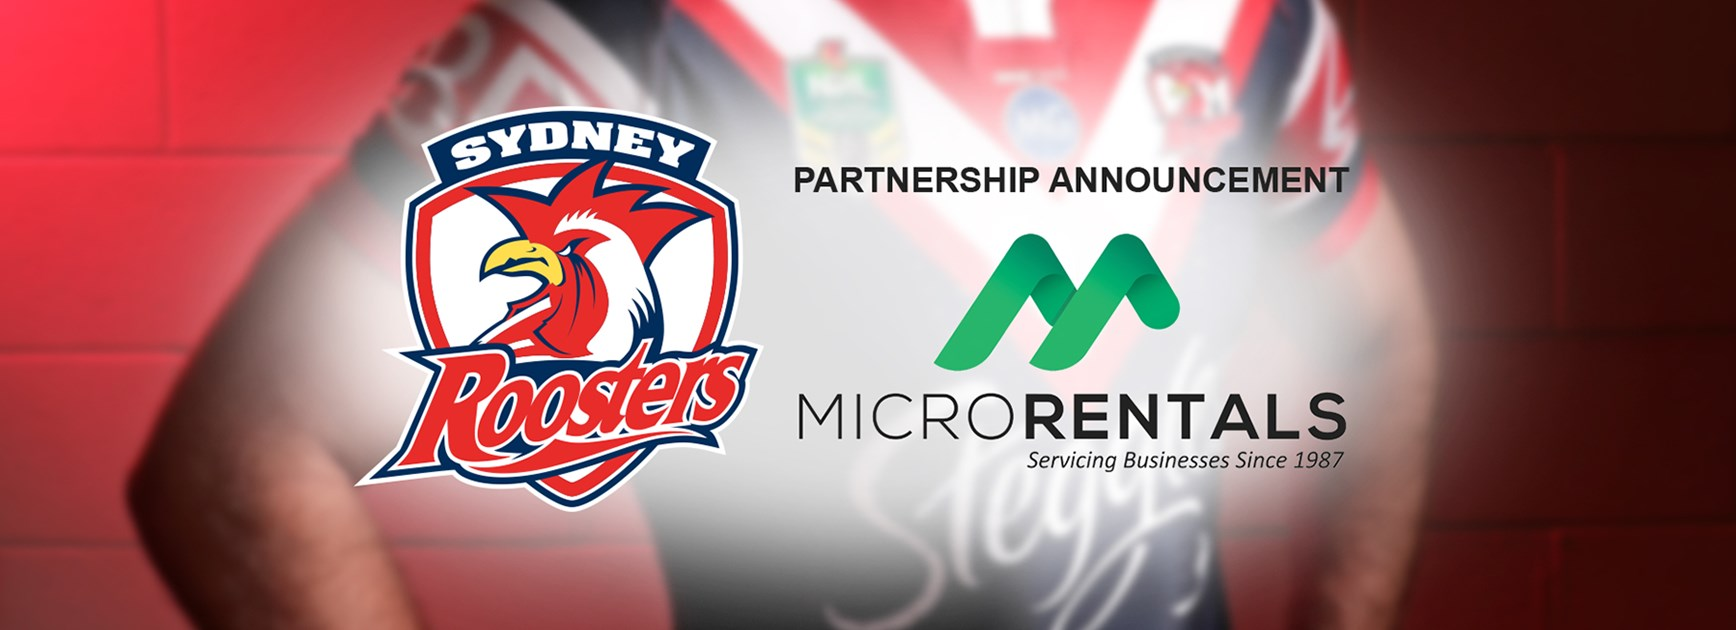 Microrentals Partnership Computes To Roosters Success